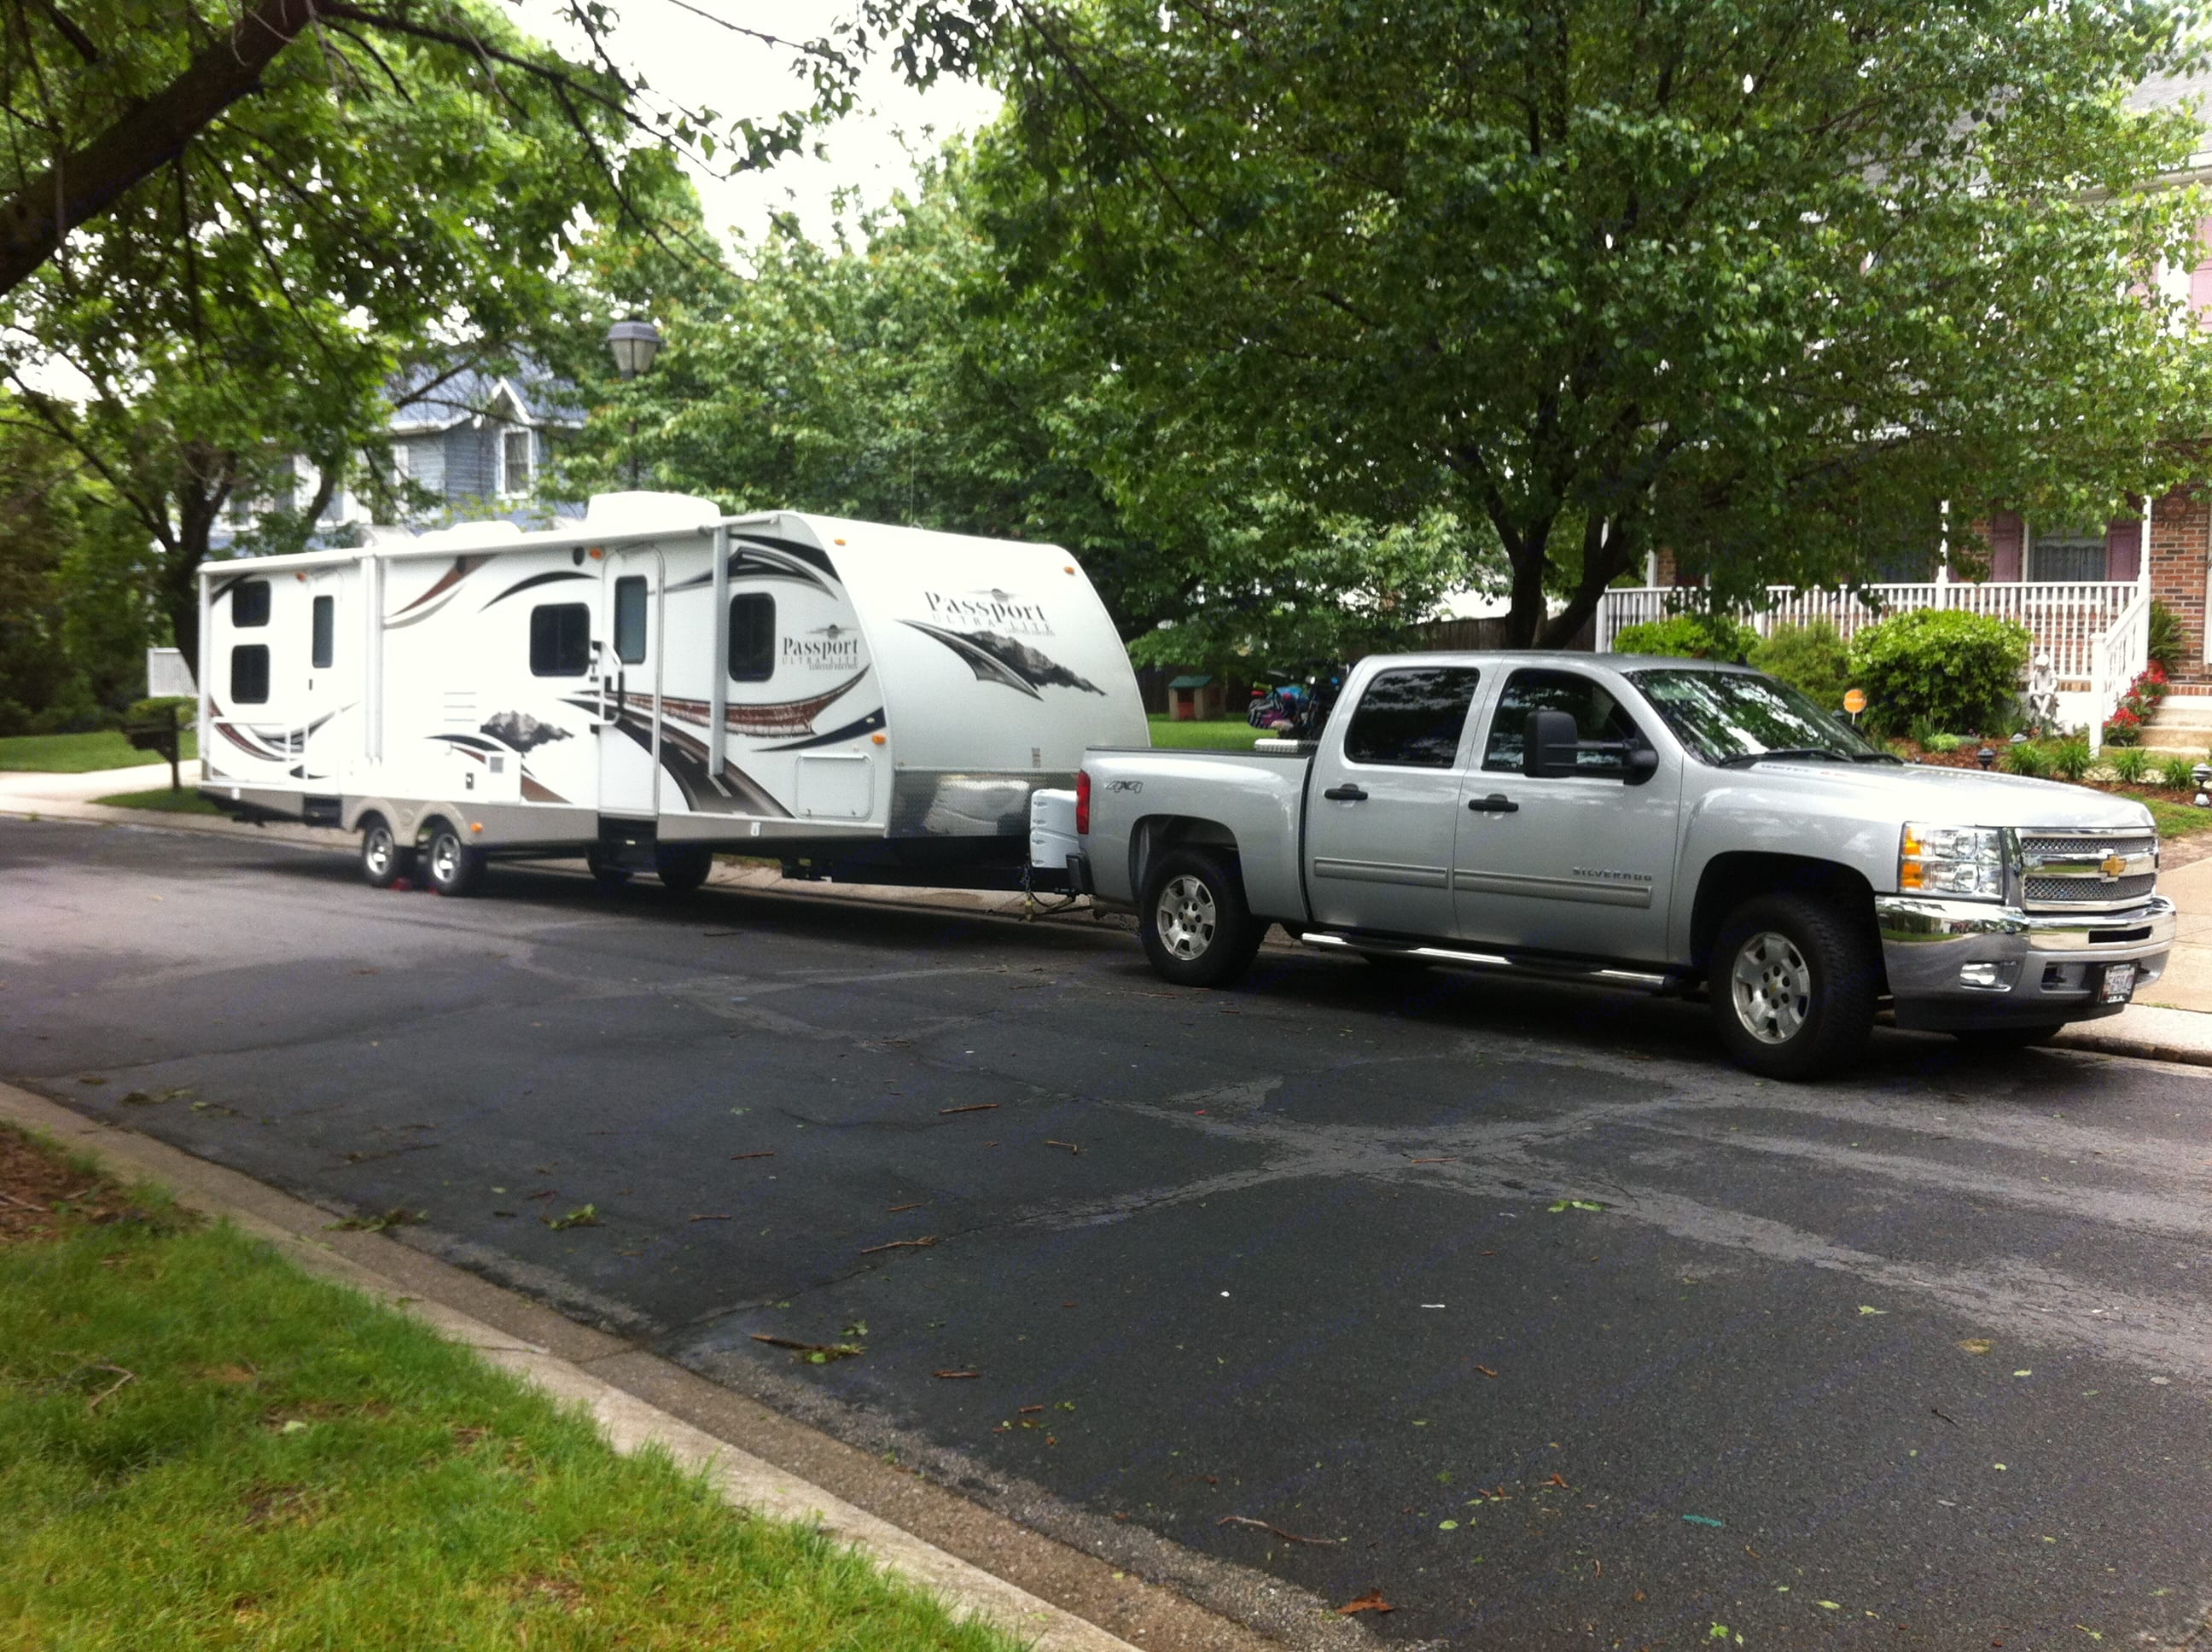 Towable with many 1500 series pickups/SUVs (depends on your GVWR, tow capacity and passenger/cargo loads.). Keystone Passport 2011